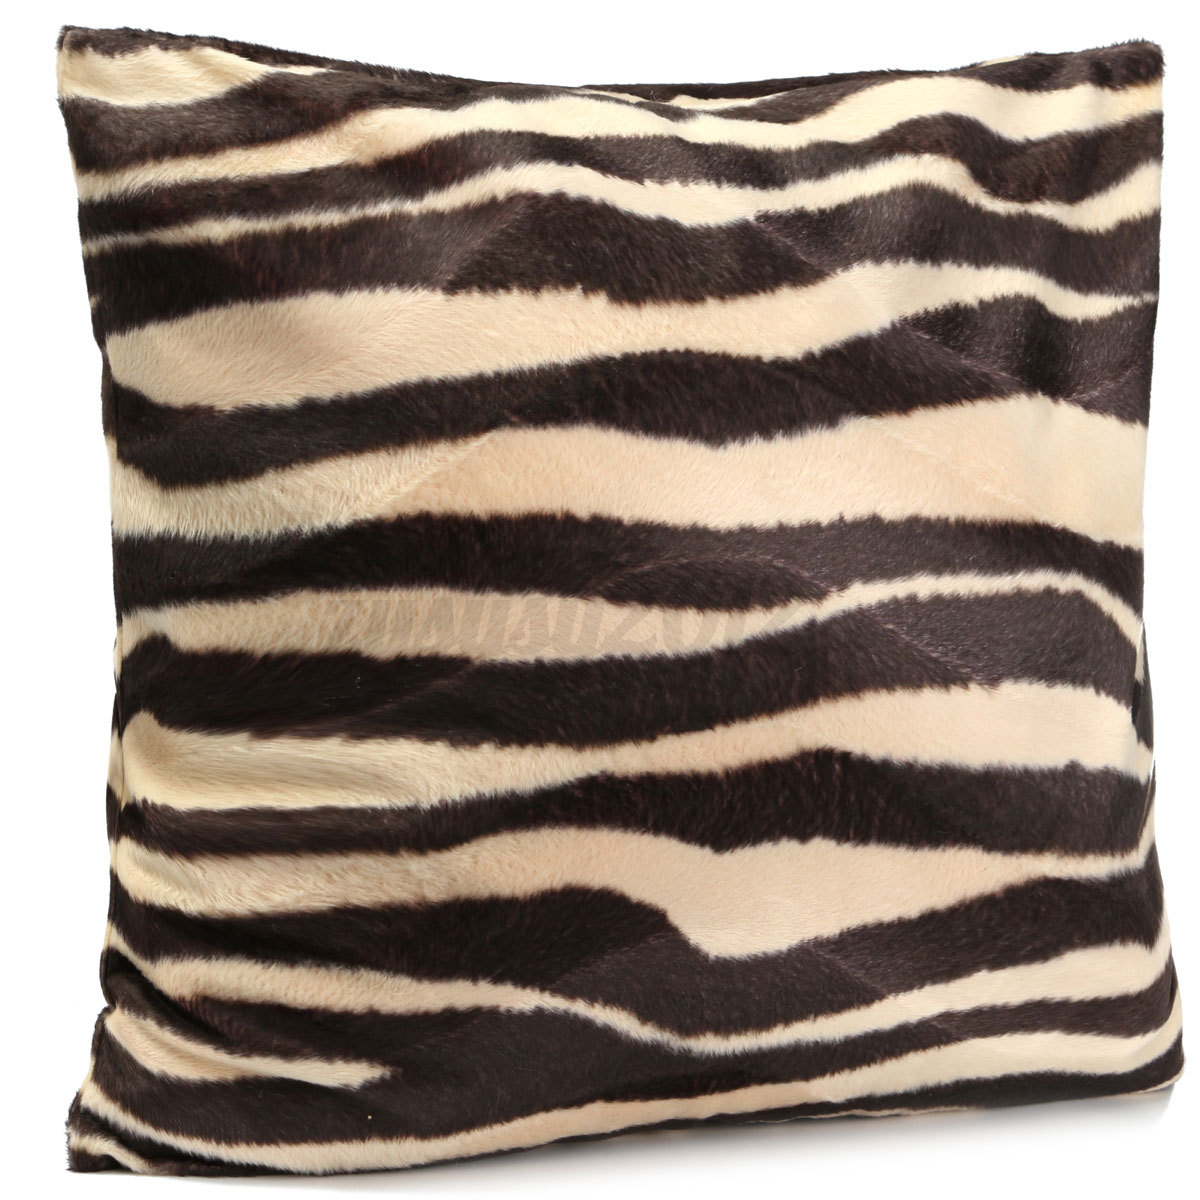 Animal Print Sofa Pillows : Animal Zebra Leopard Print Pillow Case Sofa Waist Throw Cushion Cover Home Decor eBay